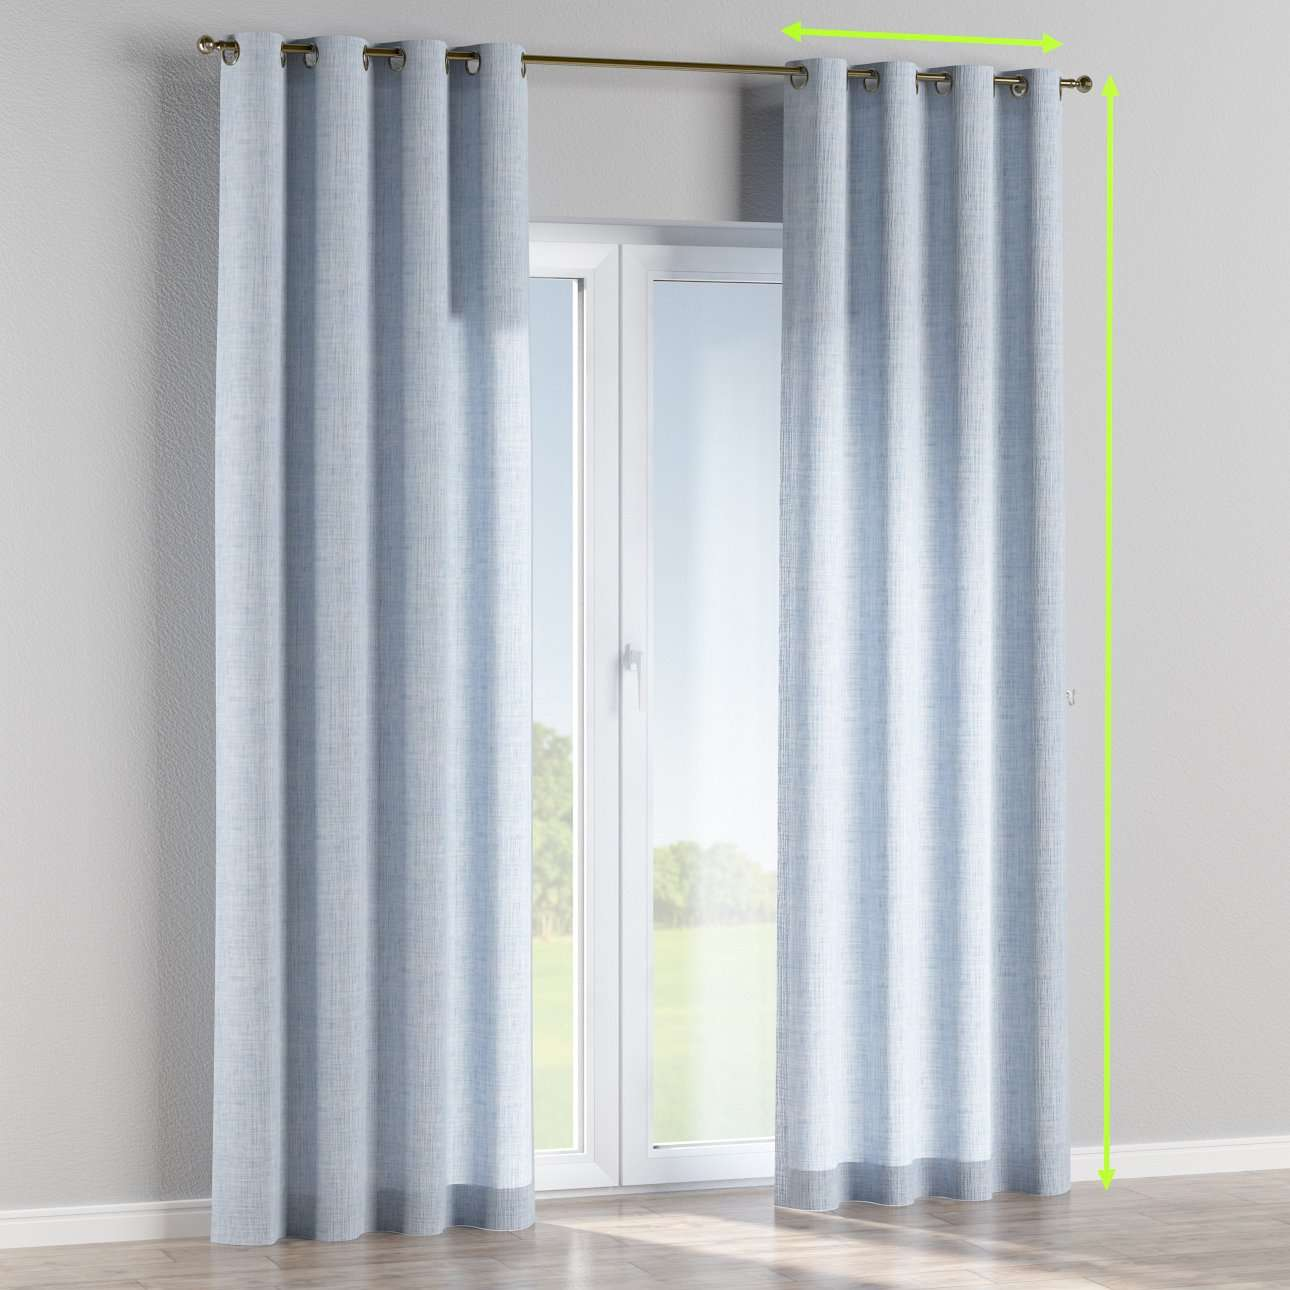 Eyelet lined curtains in collection Aquarelle, fabric: 140-74